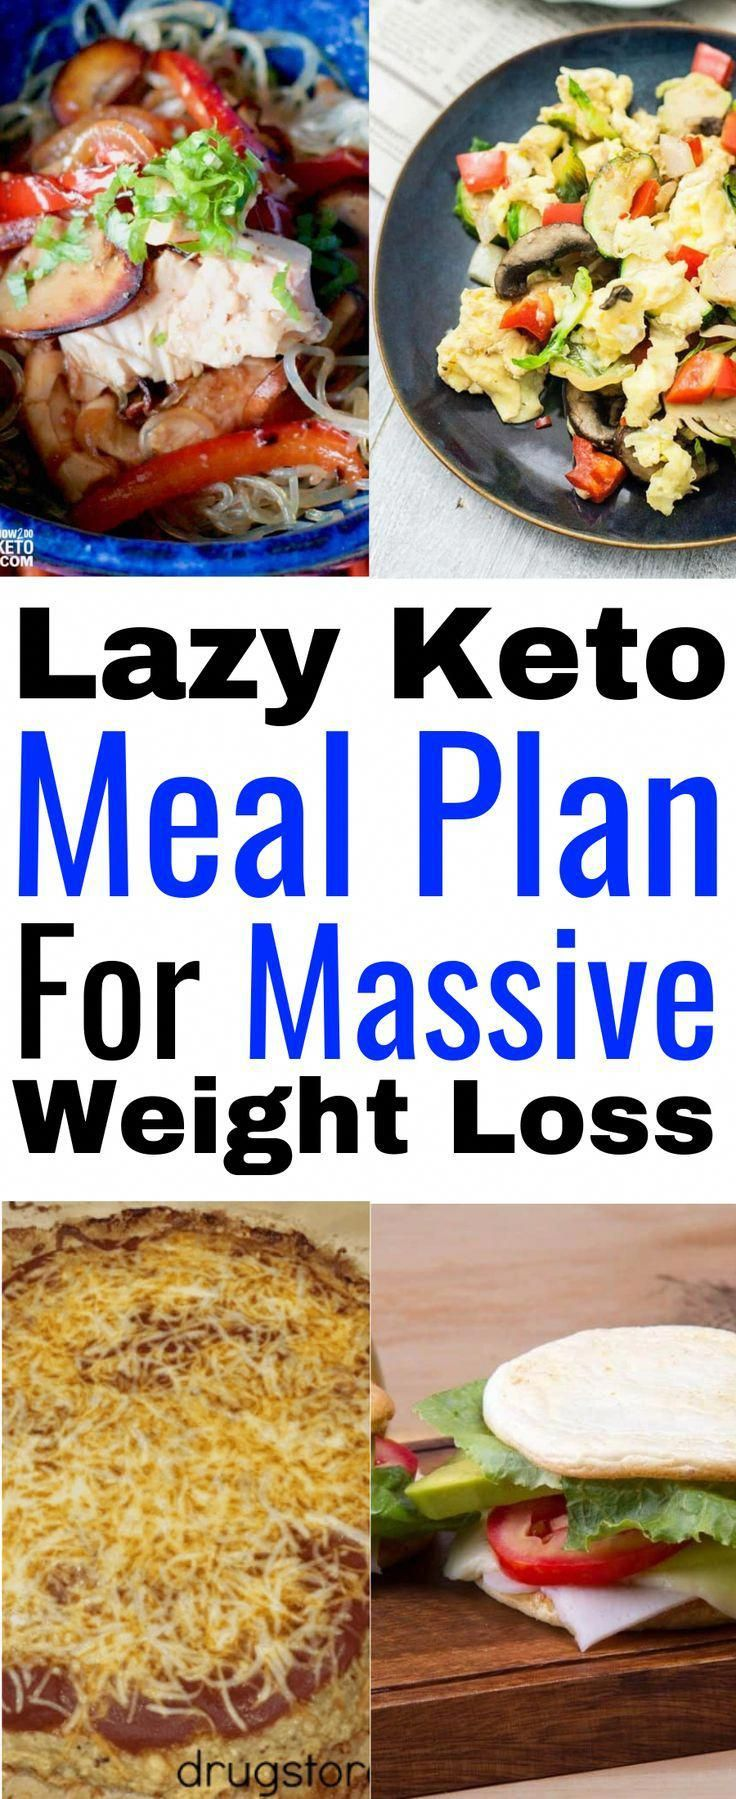 Lazy Keto Meal Plan 30 Day Keto Meal Plan With Recipes For BeginnersBeginners